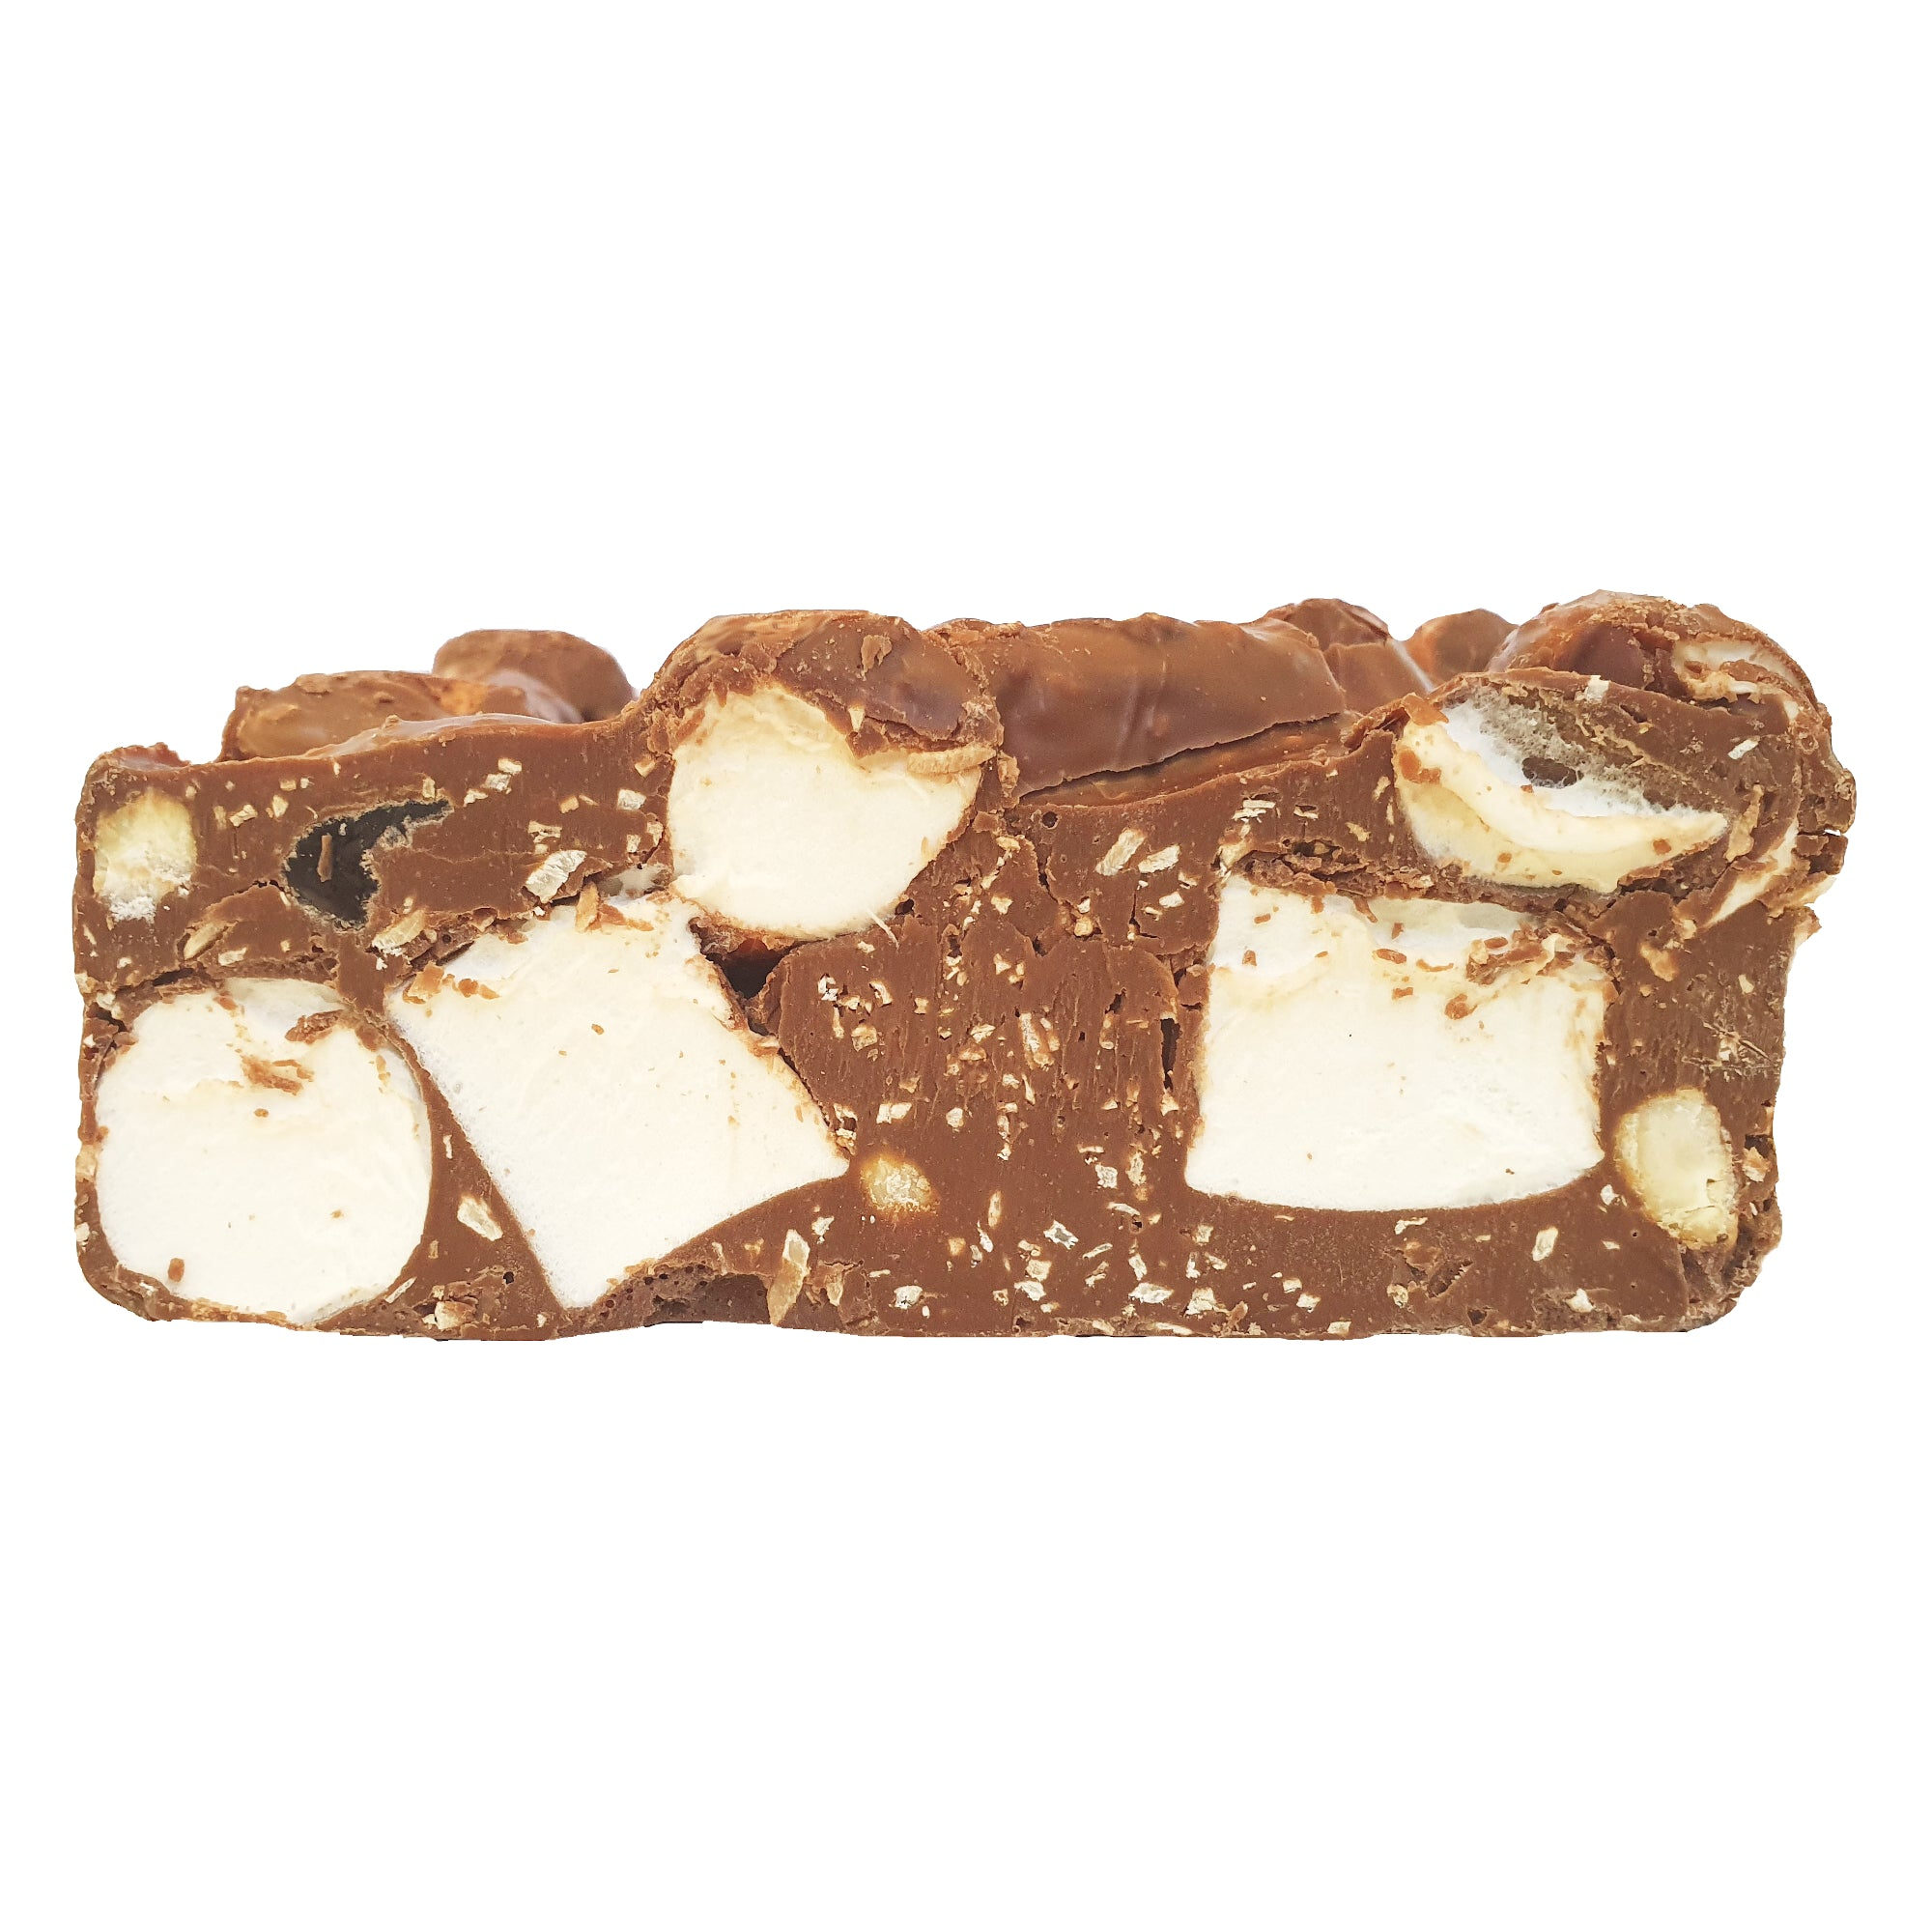 Rocky Road Cashew and Turkish Delight Milk Chocolate Block 500g